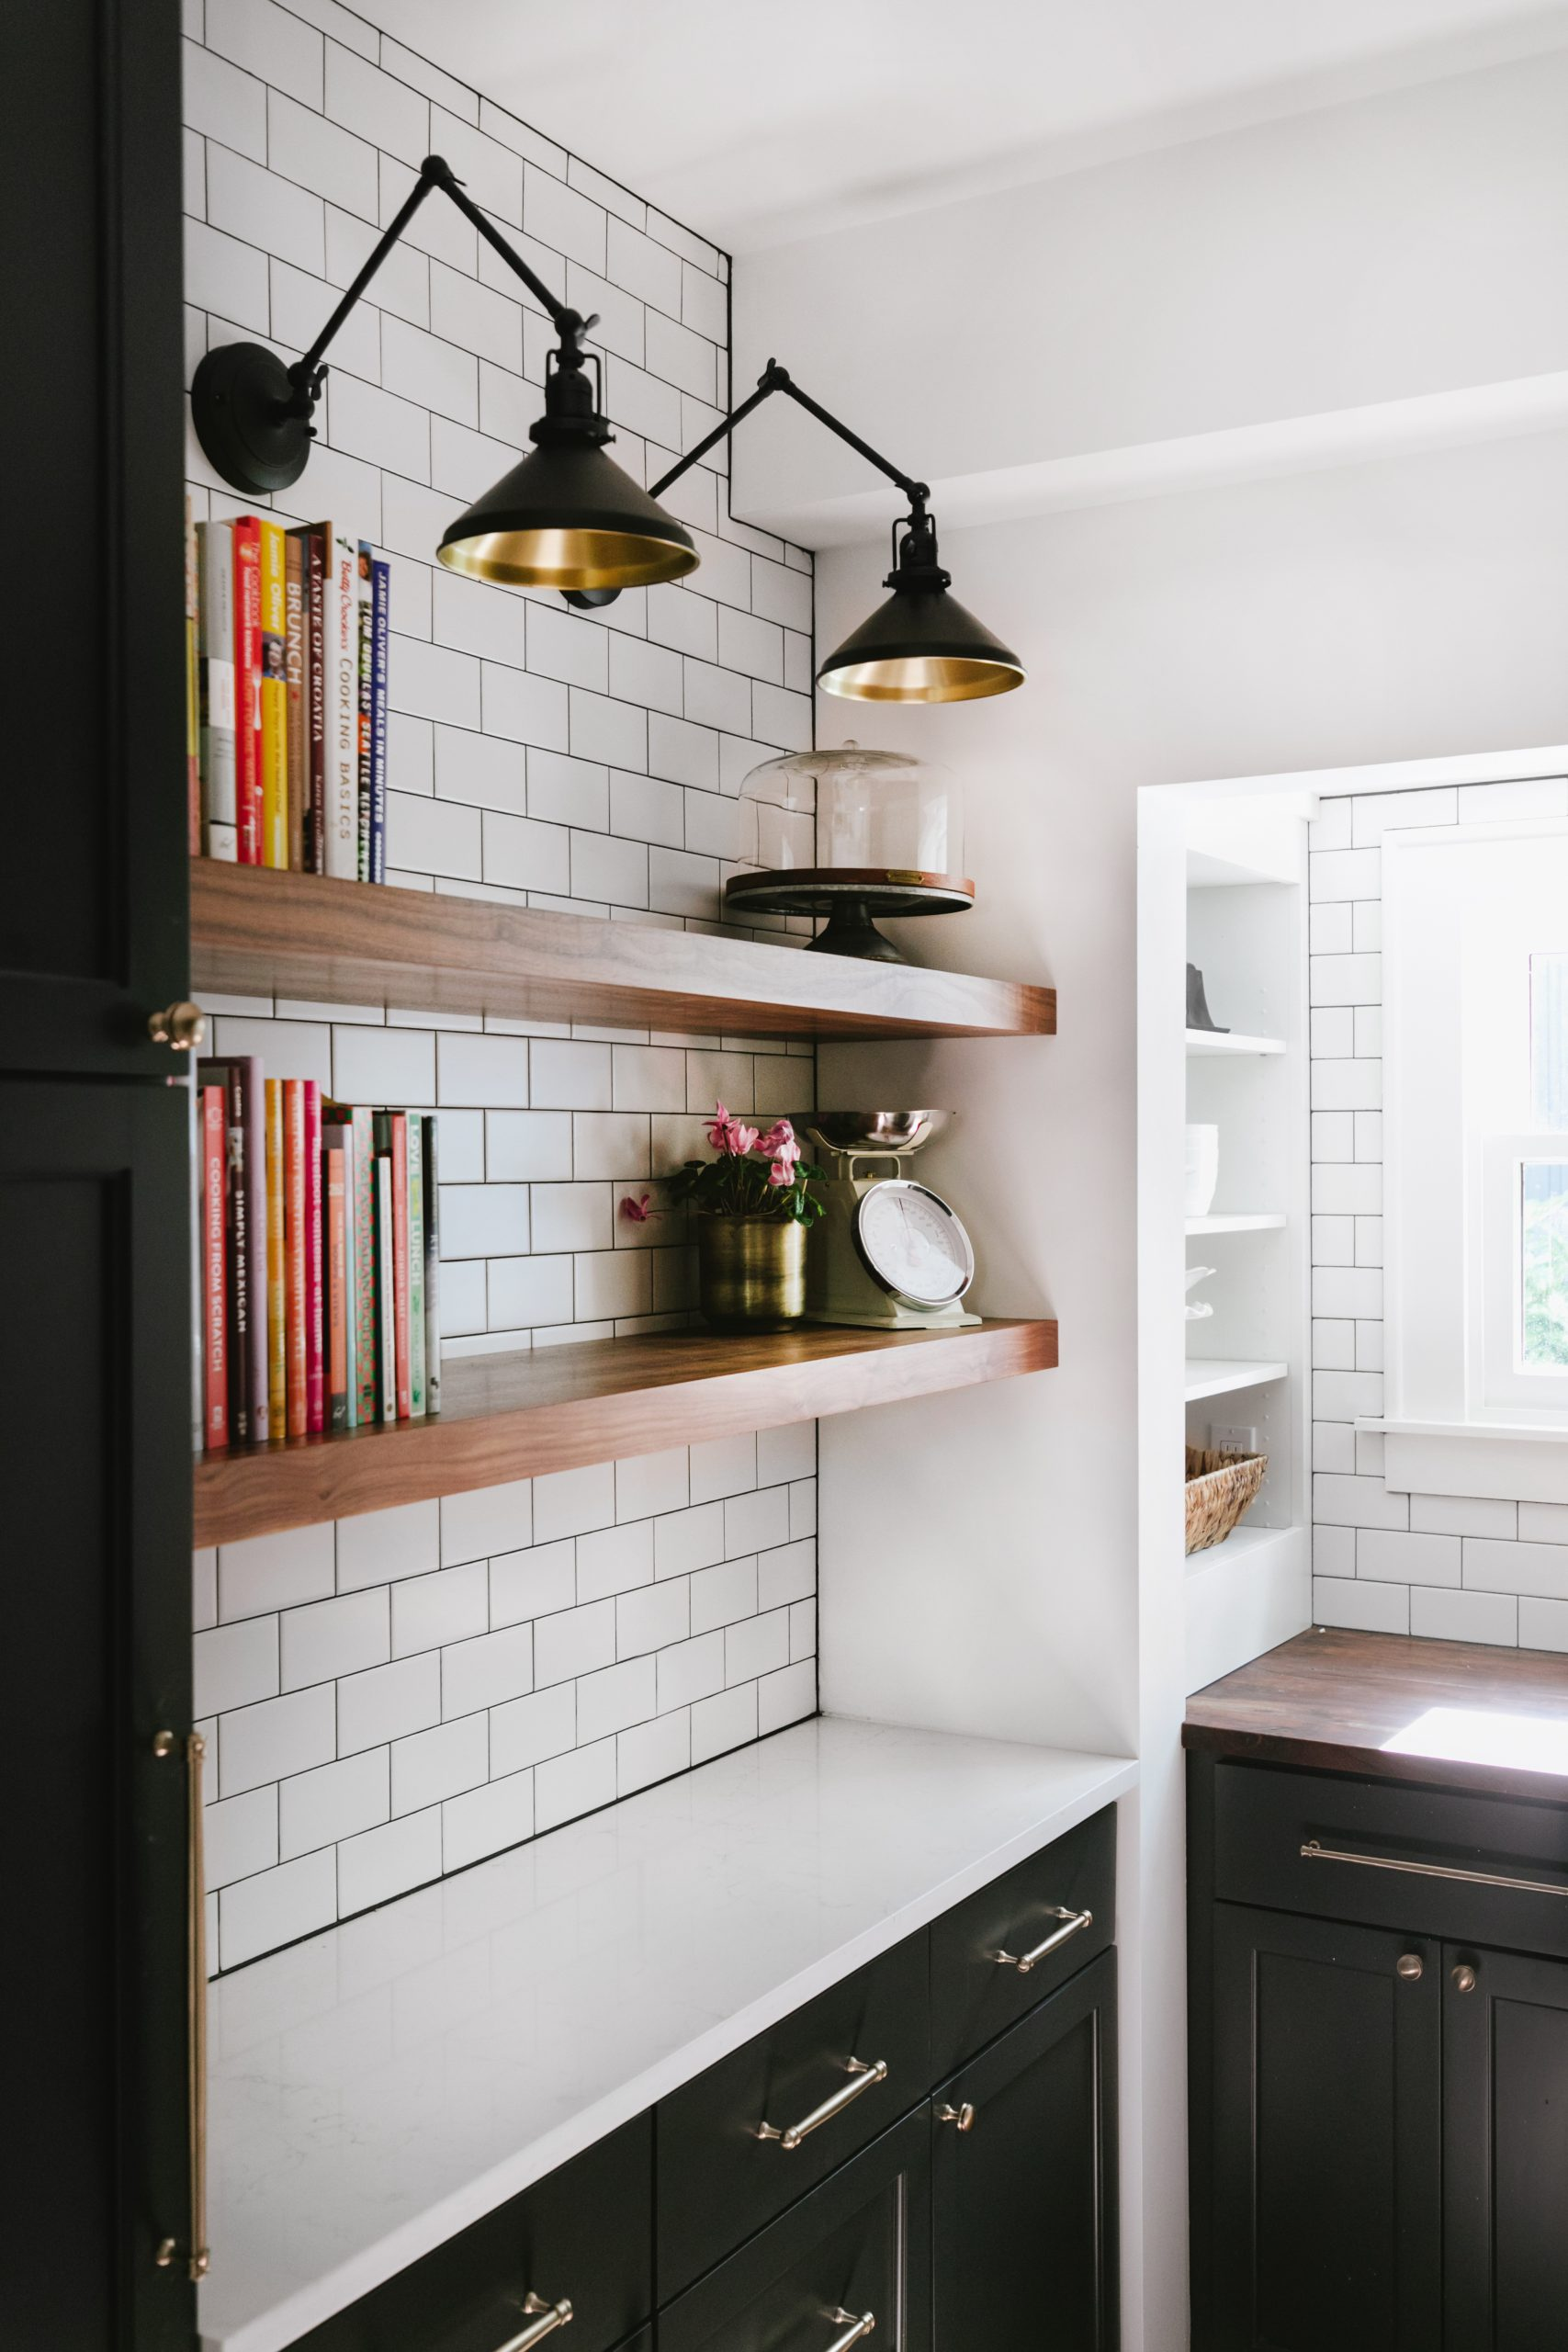 Modern Farmhouse Walk-in Pantry - The Phinery Interior Design Studio Seattle